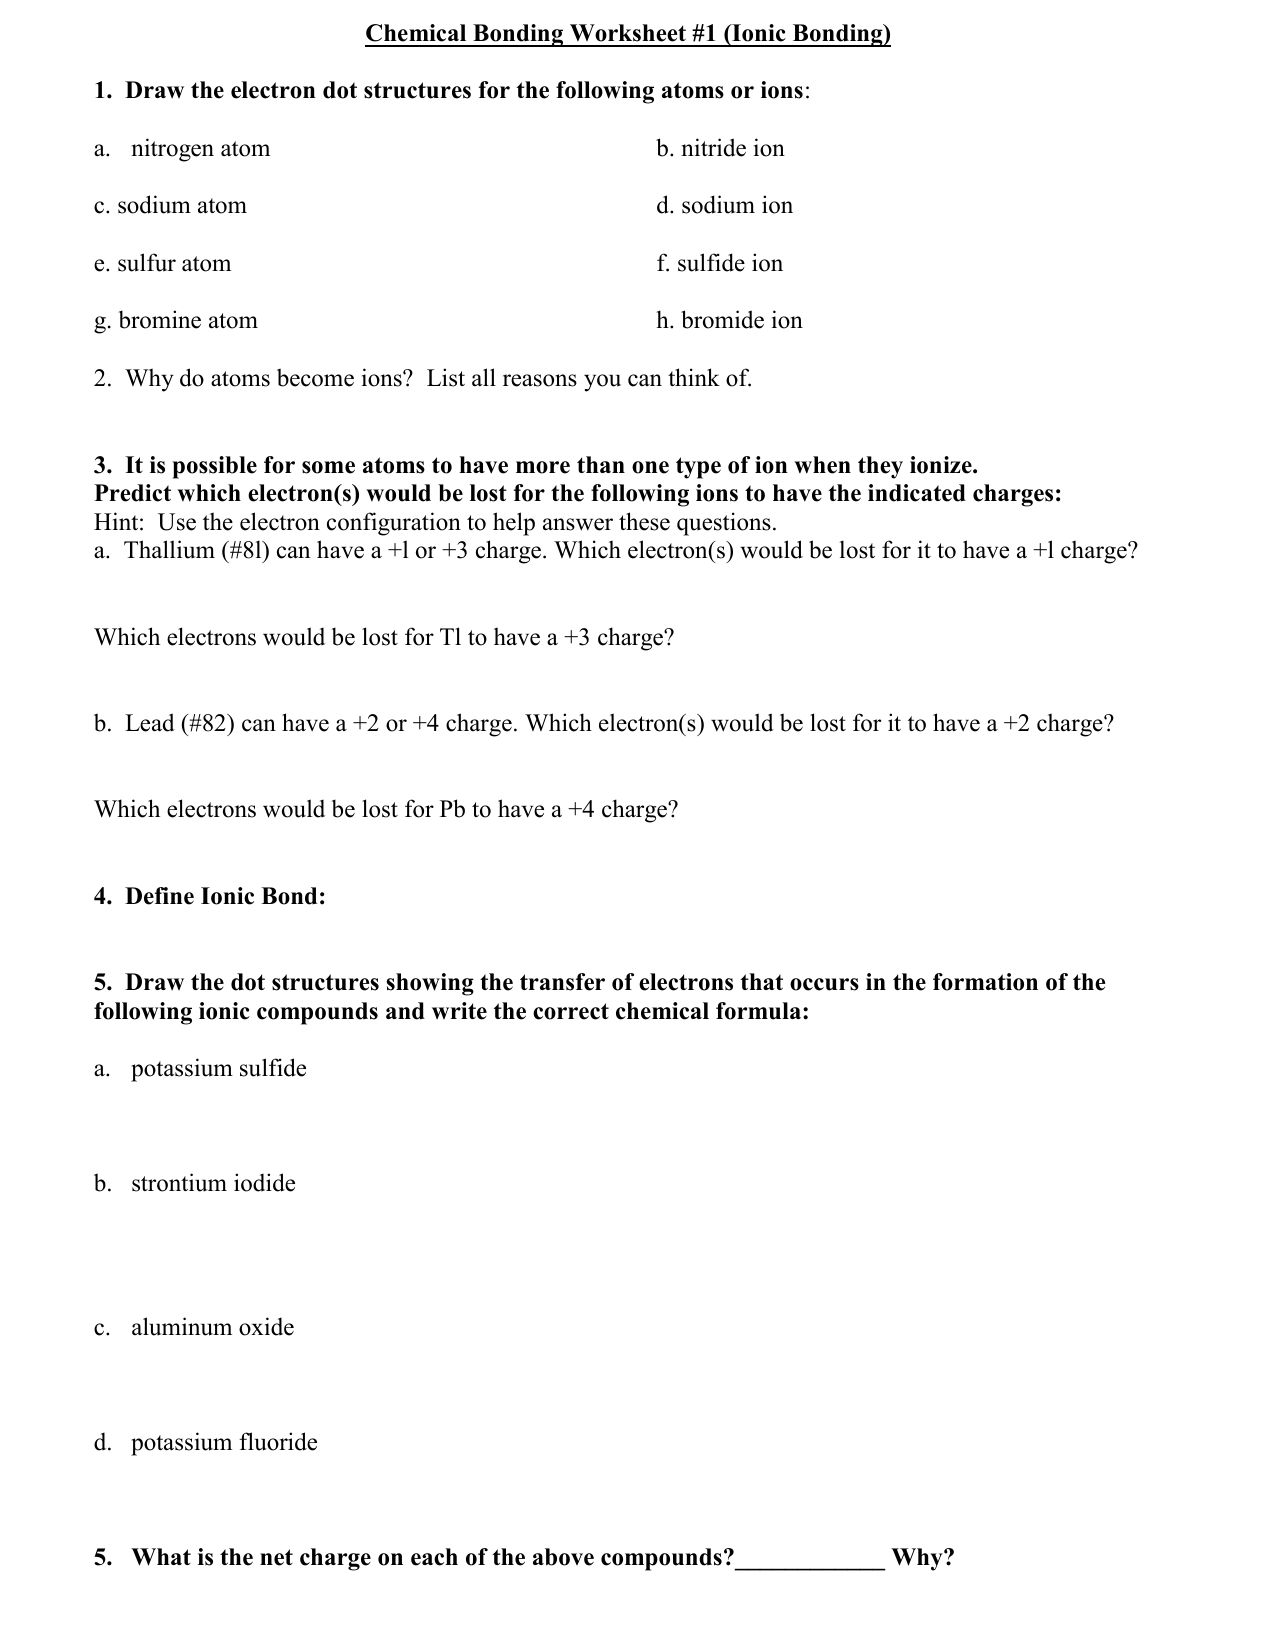 Lewis Dot Structures Worksheet 1 Answer Key